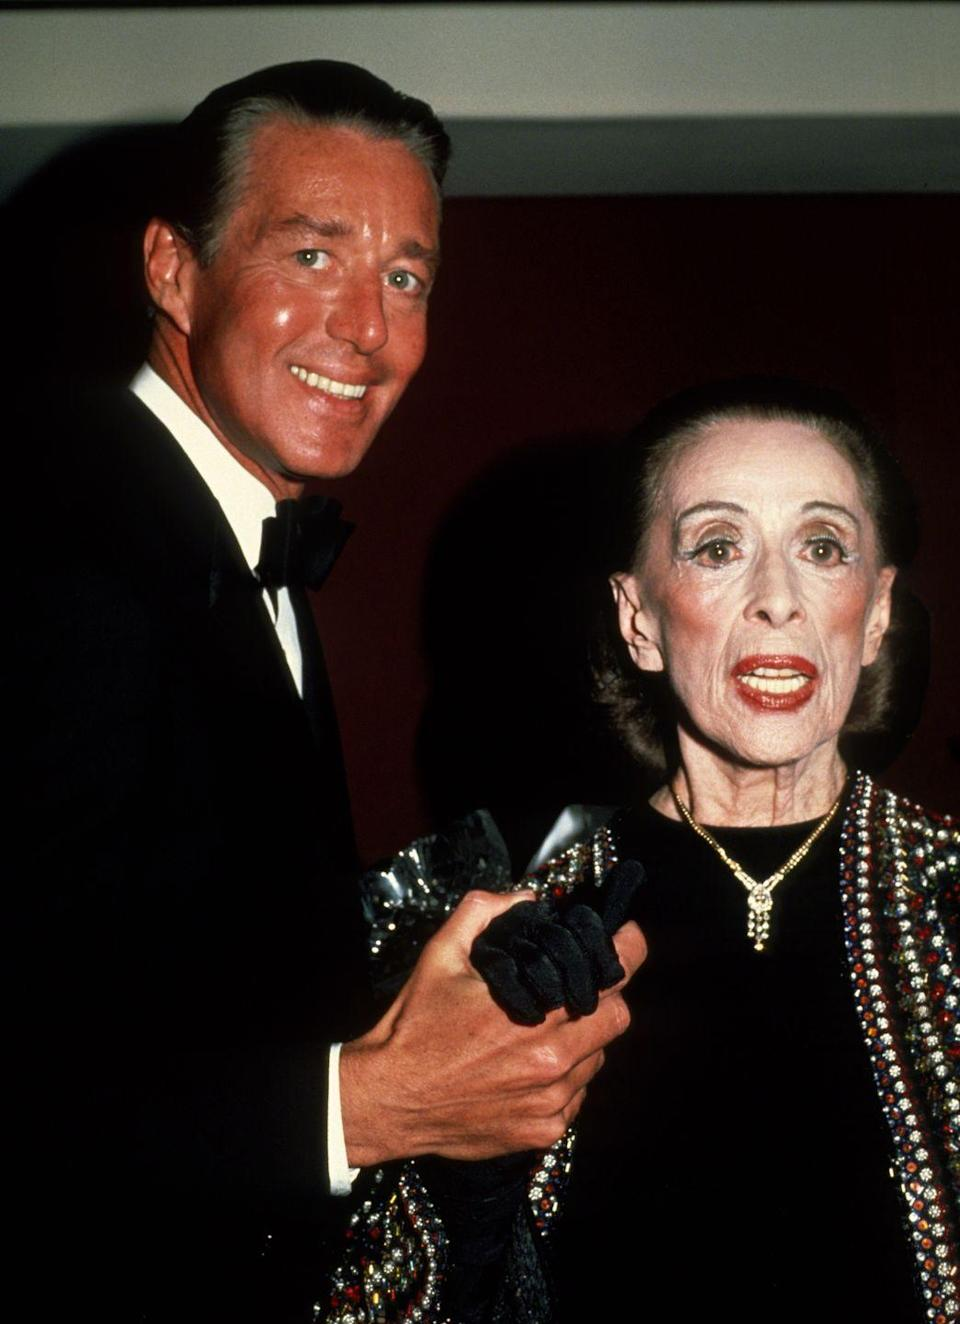 <p>Halston and iconic dancer Martha Graham are pictured here at an event. The pair collaborated on costumes for Graham's dance productions. </p>